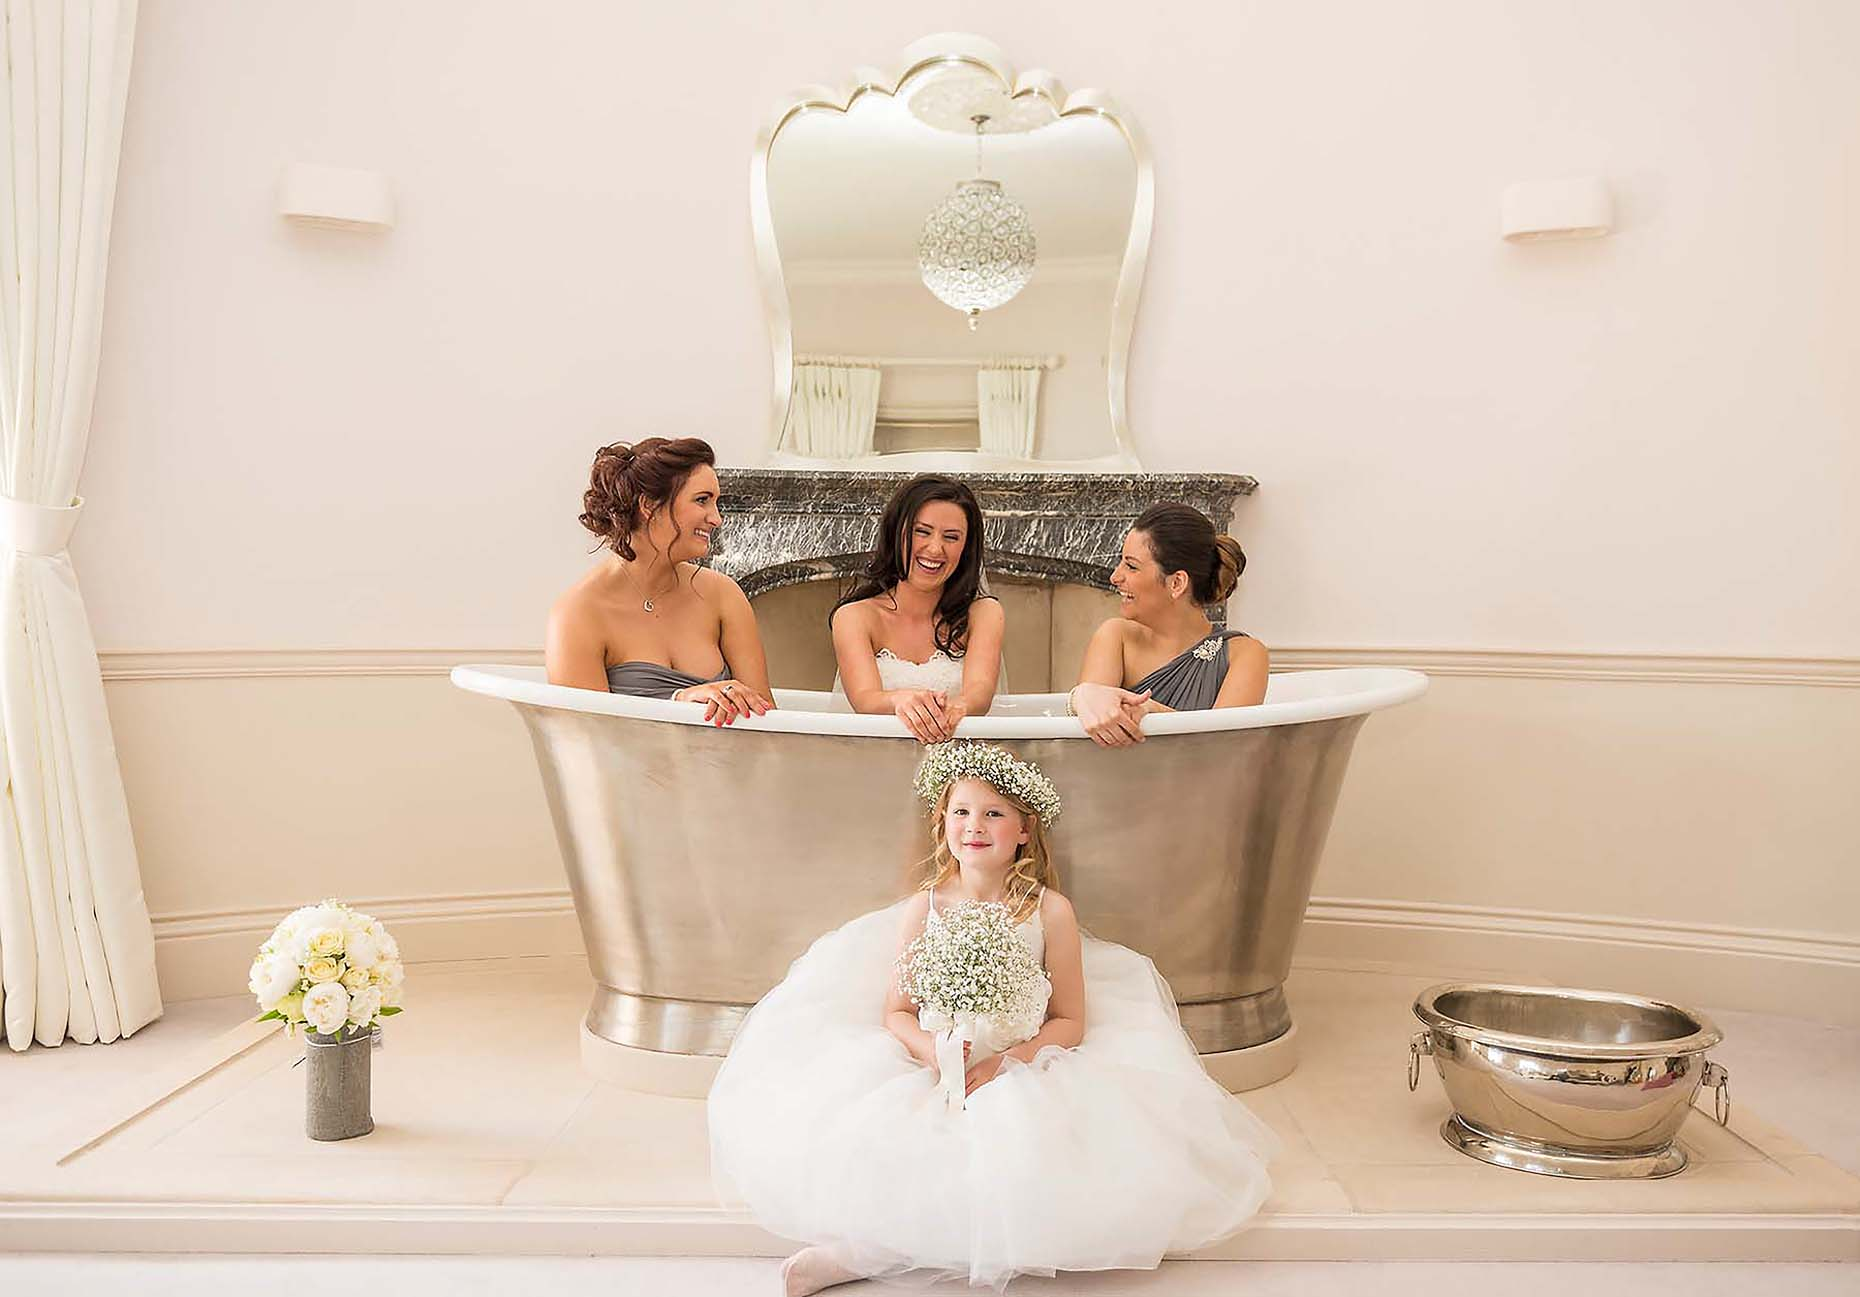 bridesmaids-in-bathtub-penn-castle-weddings-dorset-laura-15